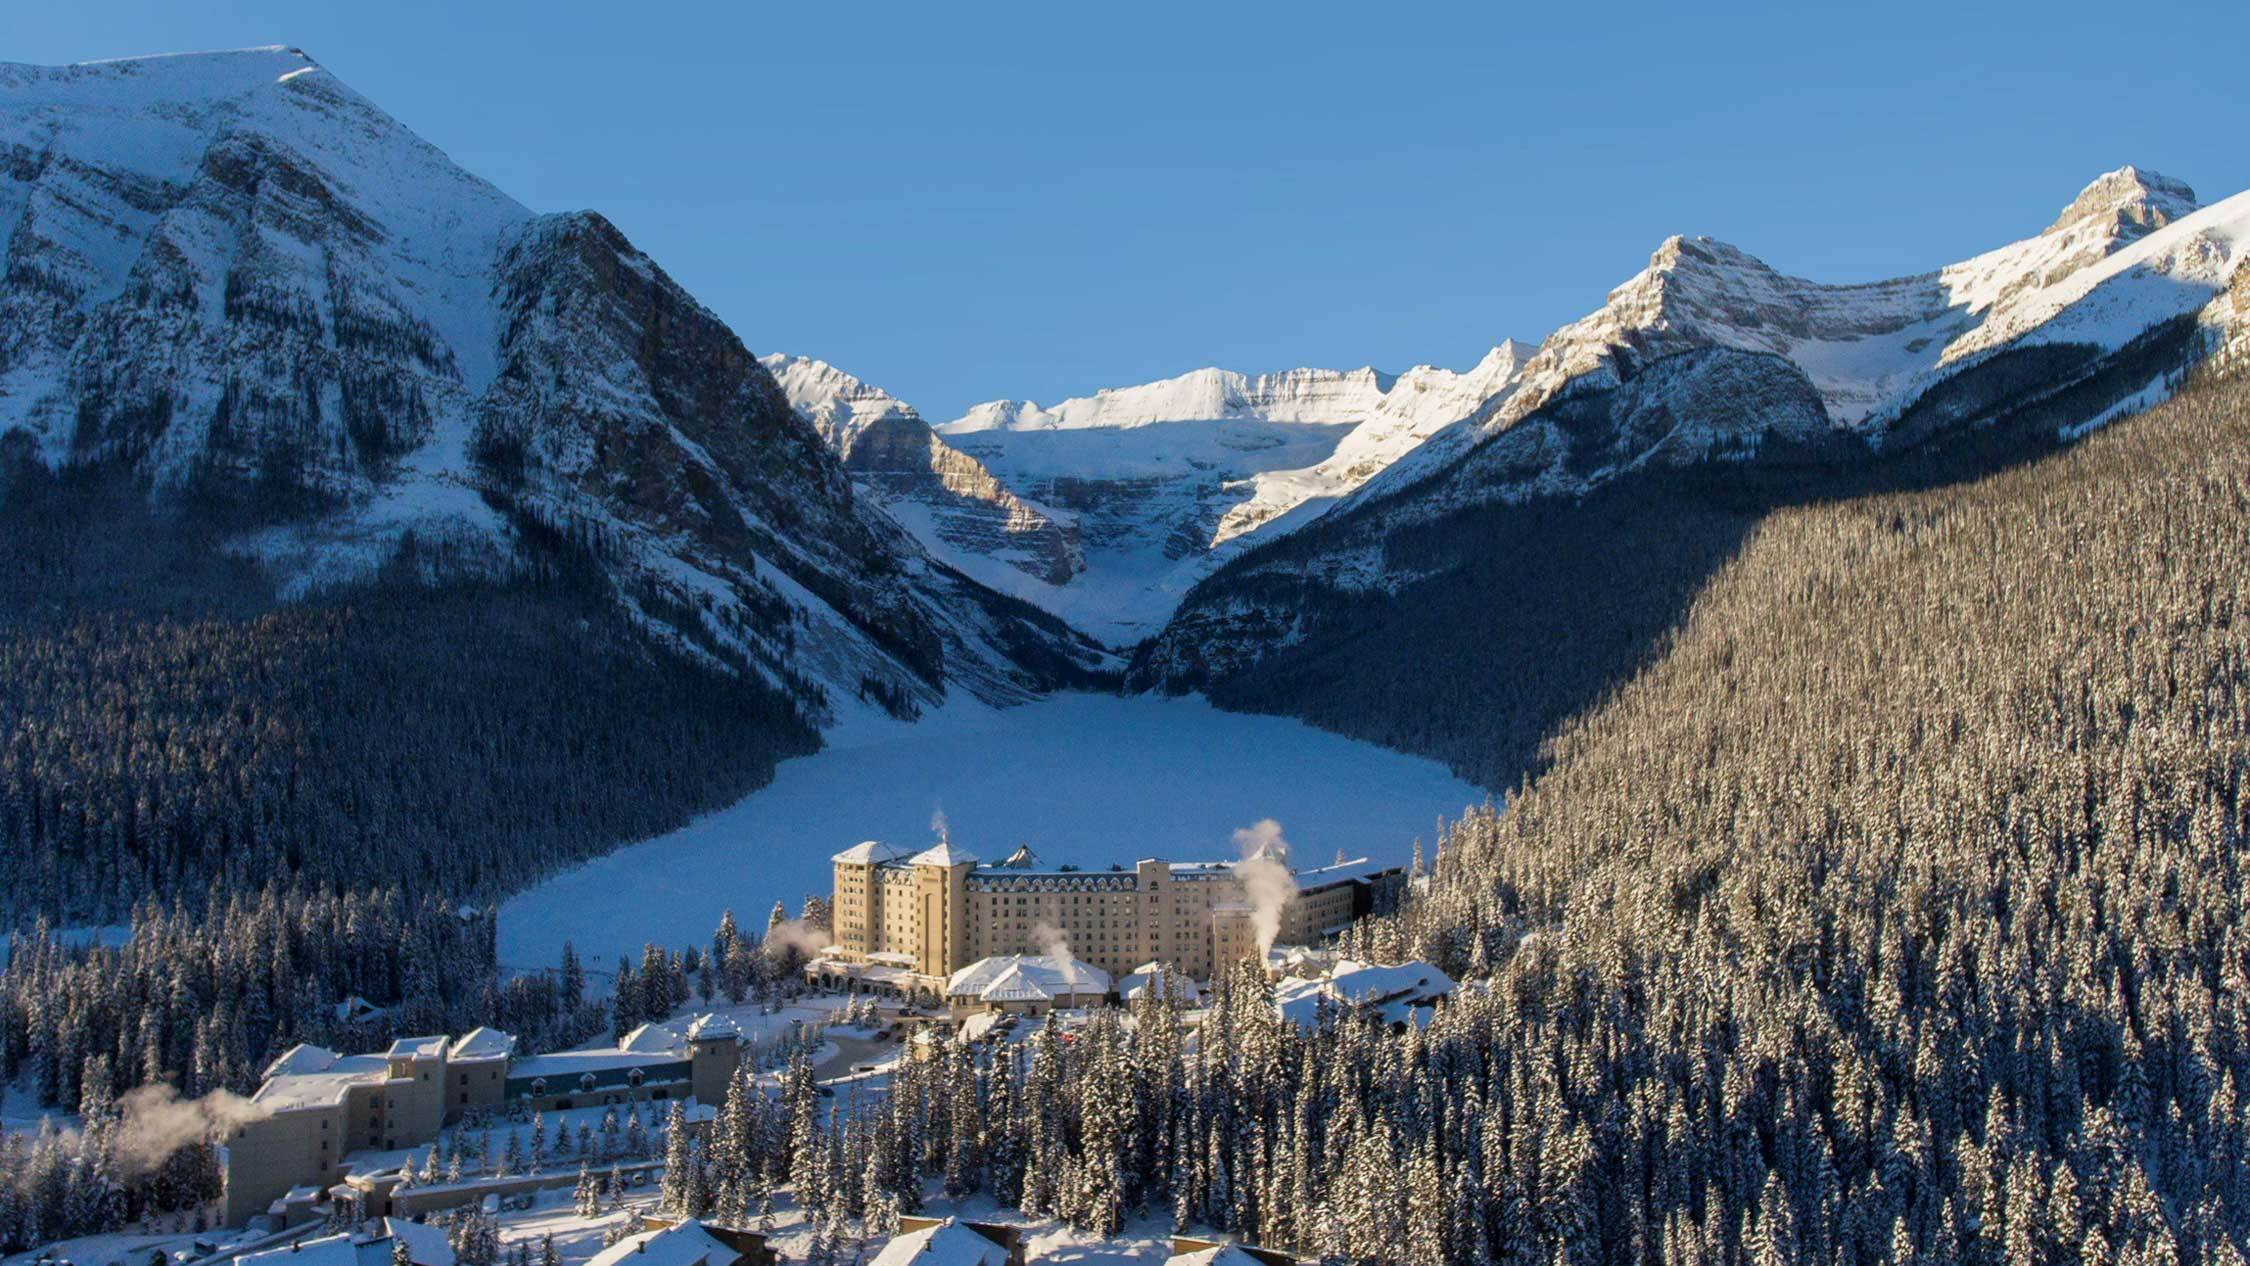 Qantas Hotels Fairmont Chateau Lake Louise